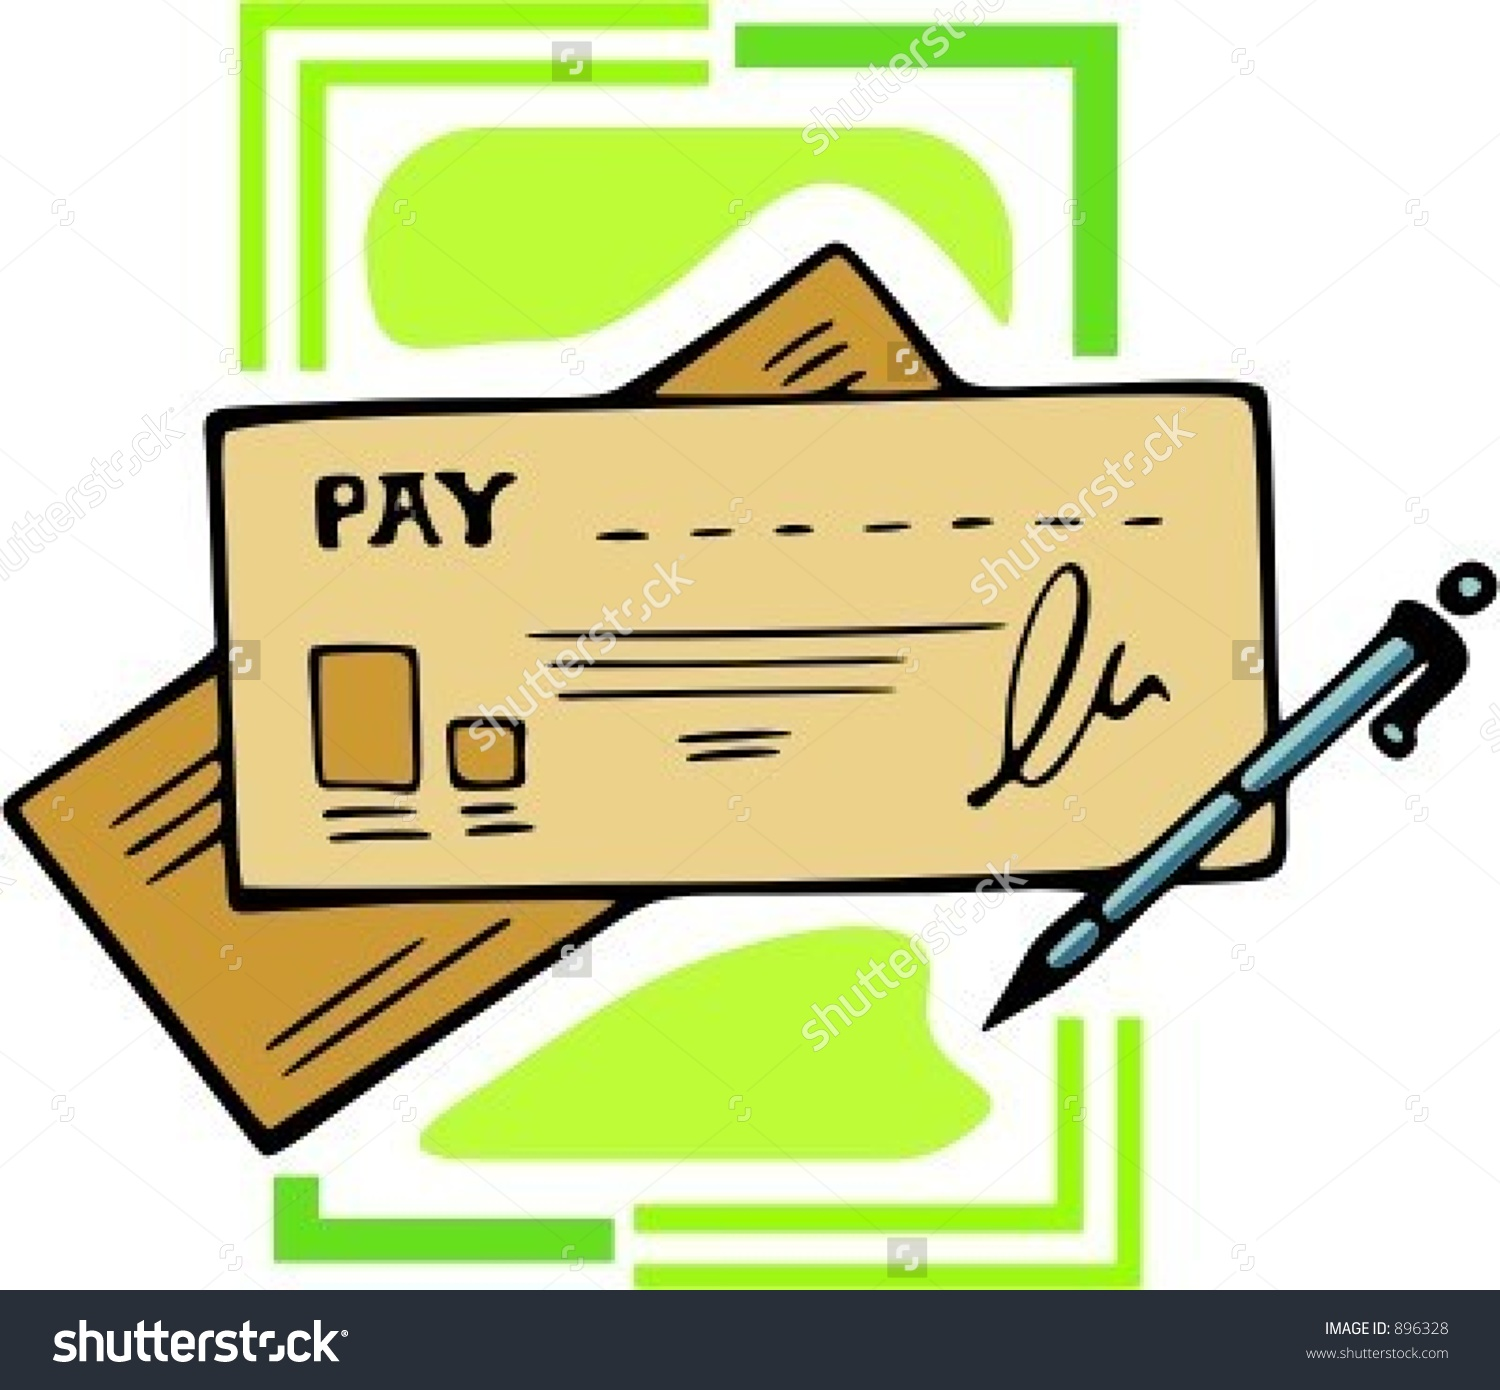 Pay Checkcheque With Pen.Vector Illustration.